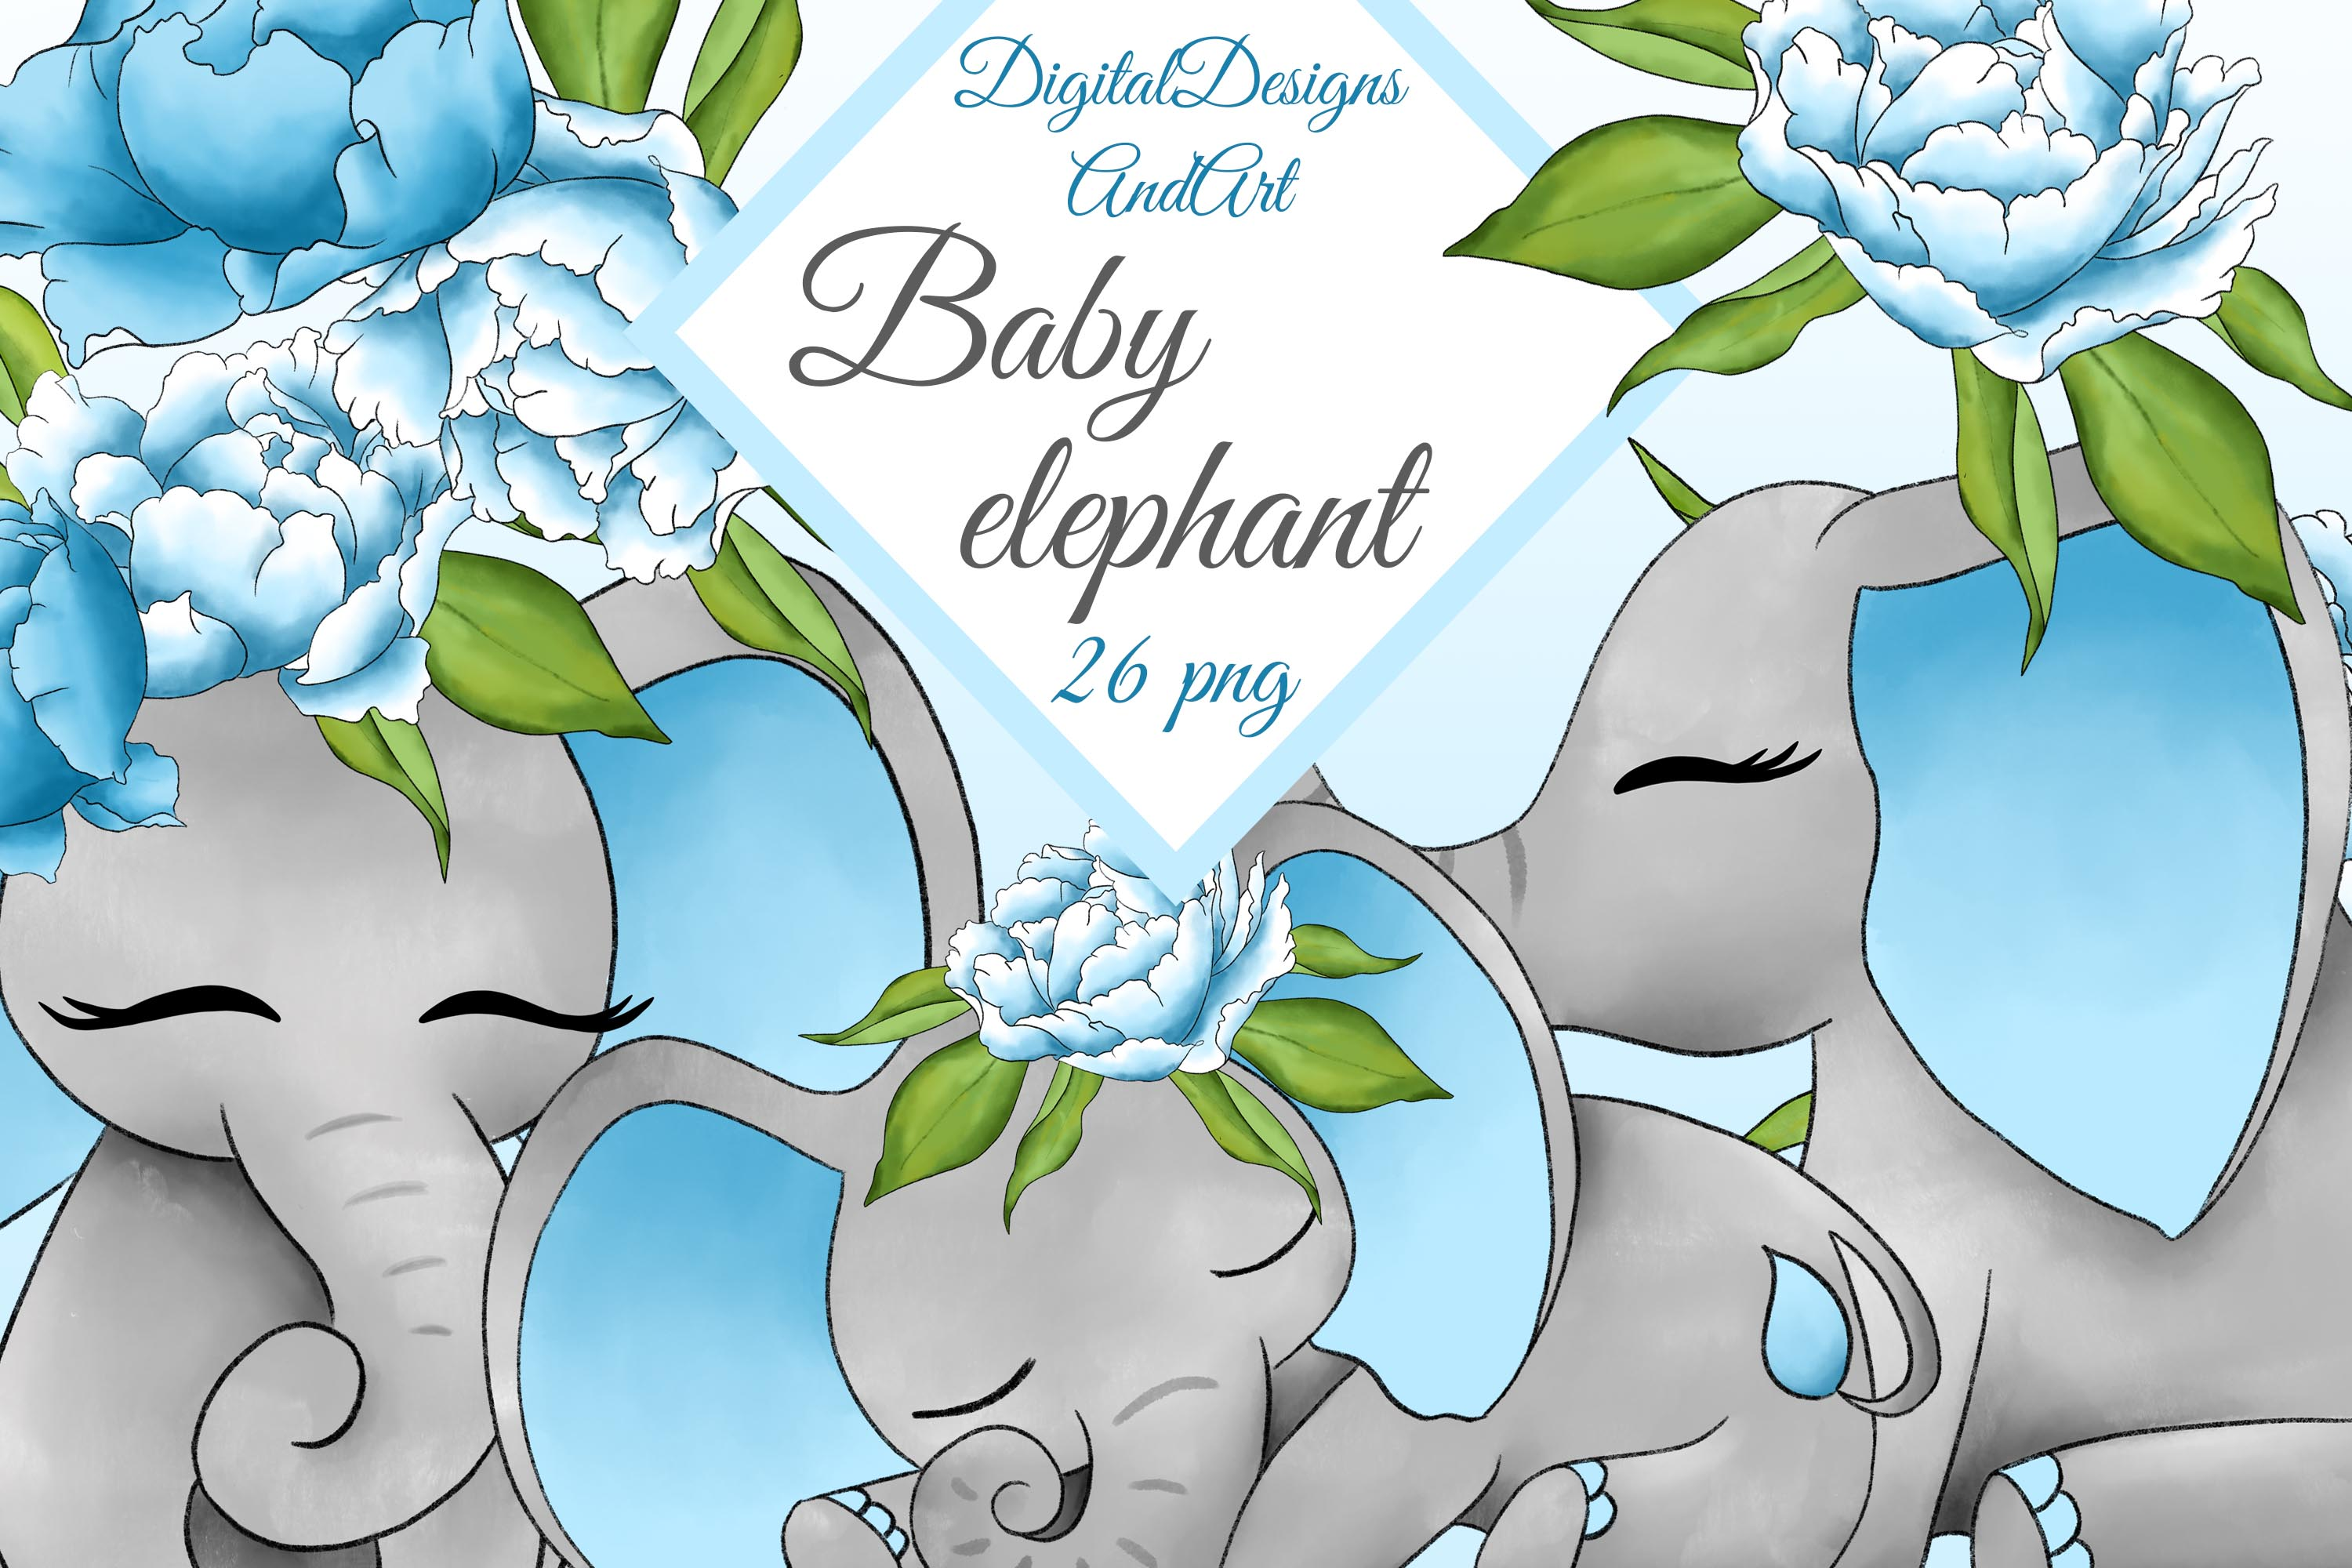 Baby elephant clipart example image 1